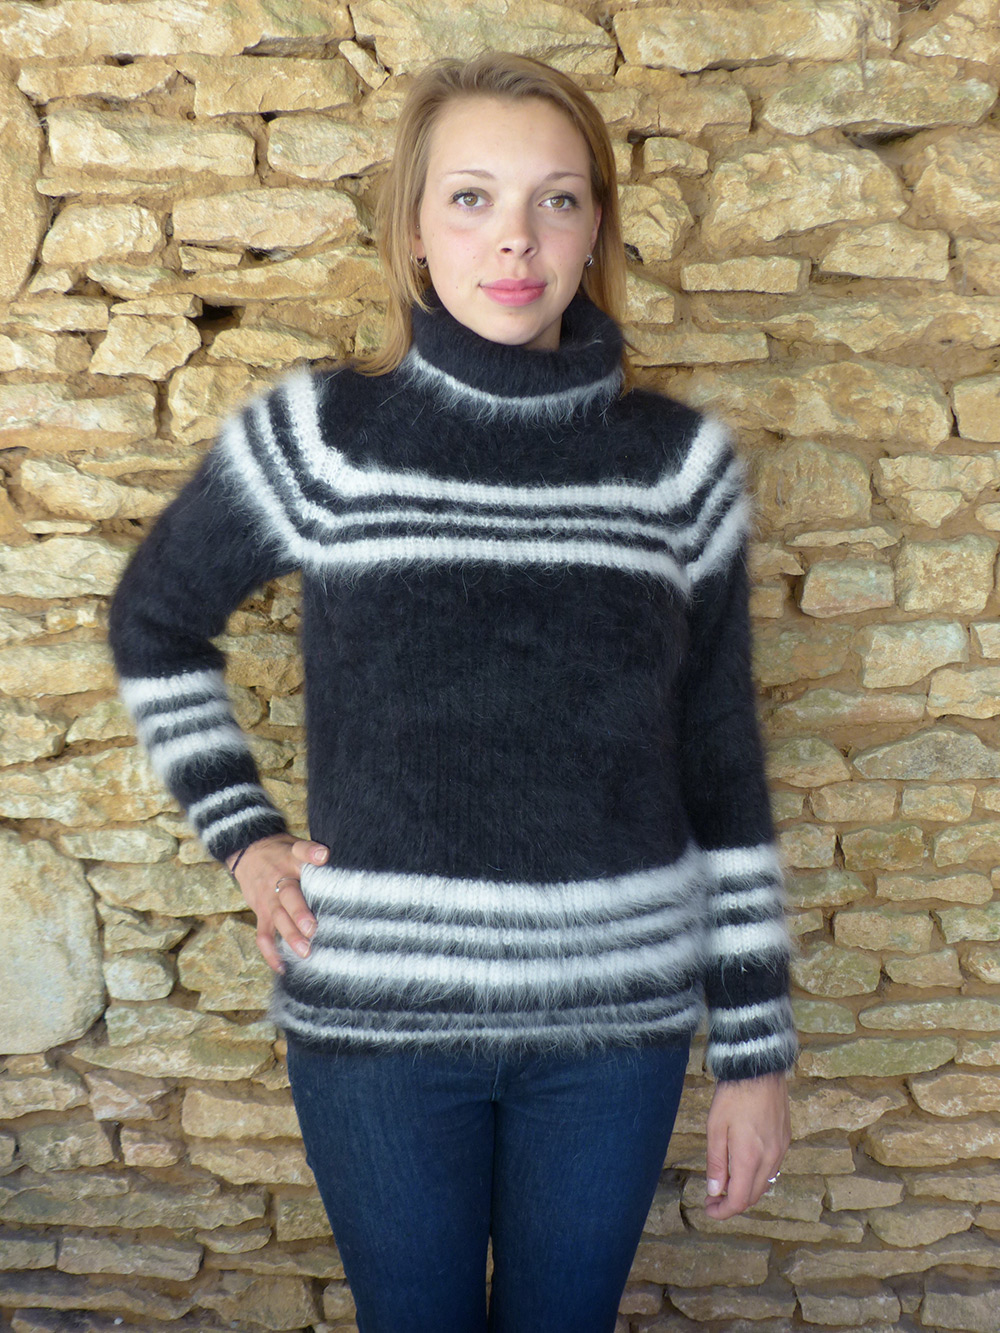 Vêtements en laine angora 100% made in France